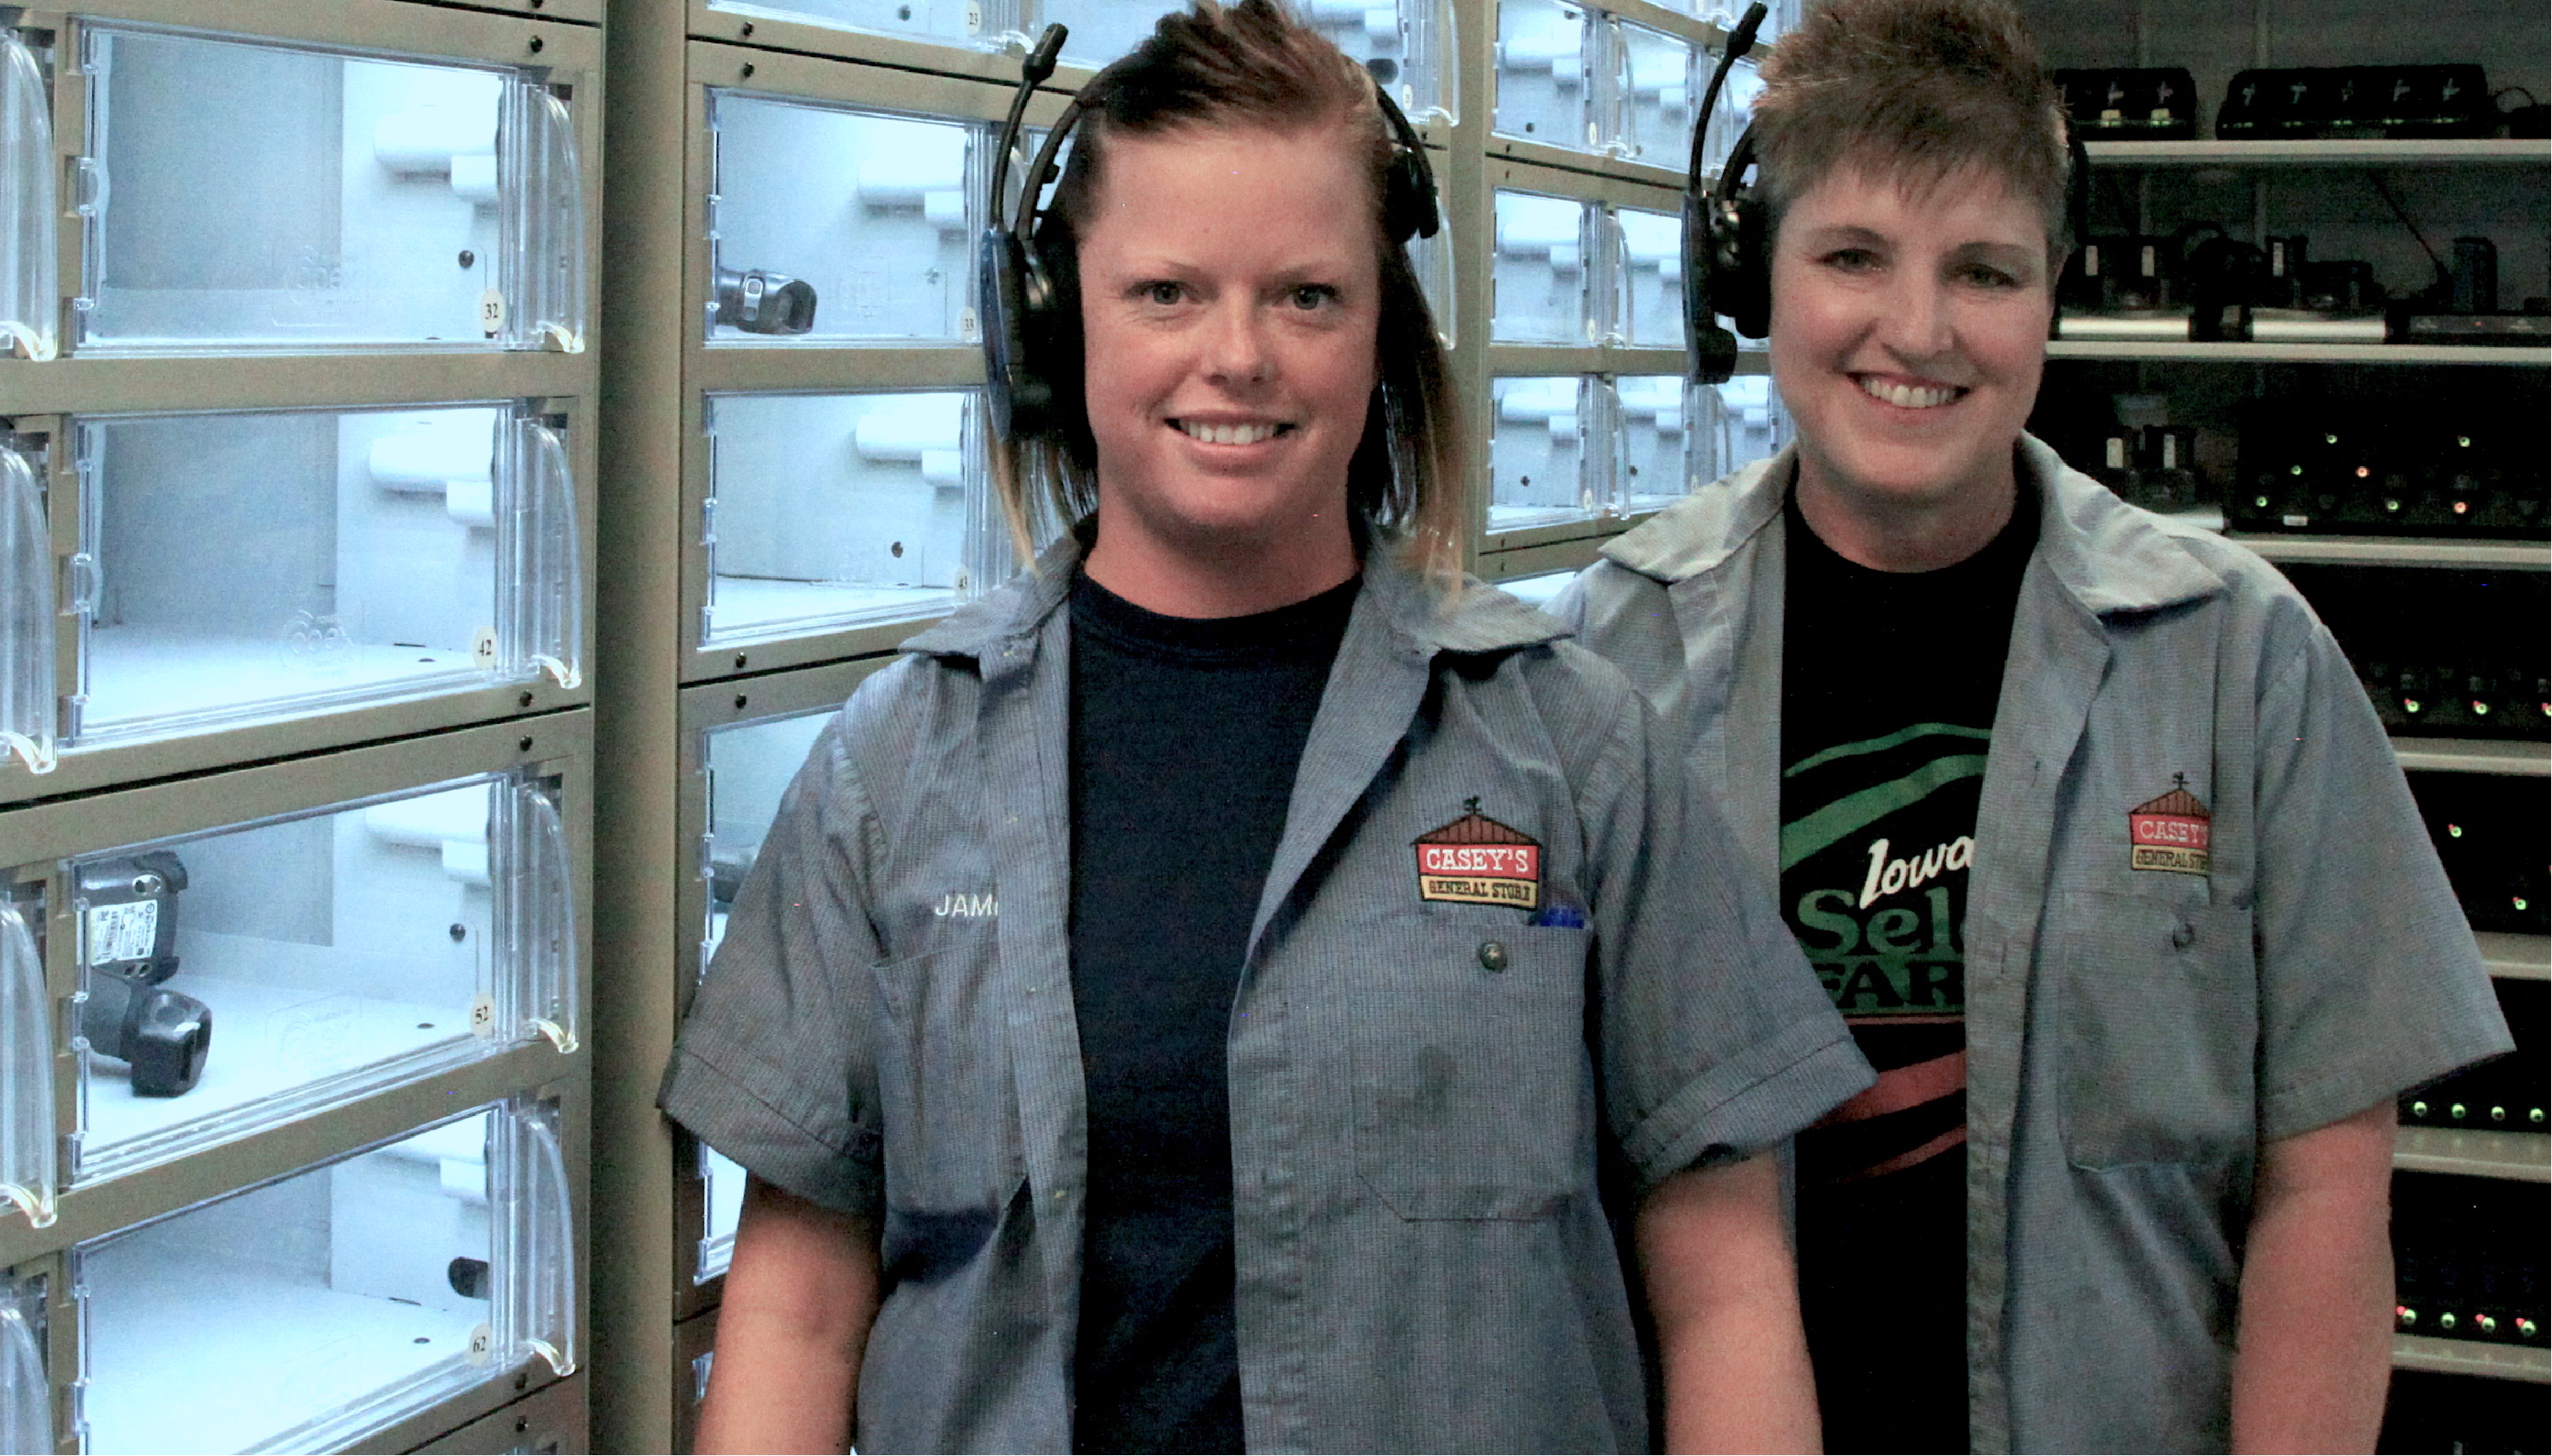 Warehouse associates wearing voice picking headsets